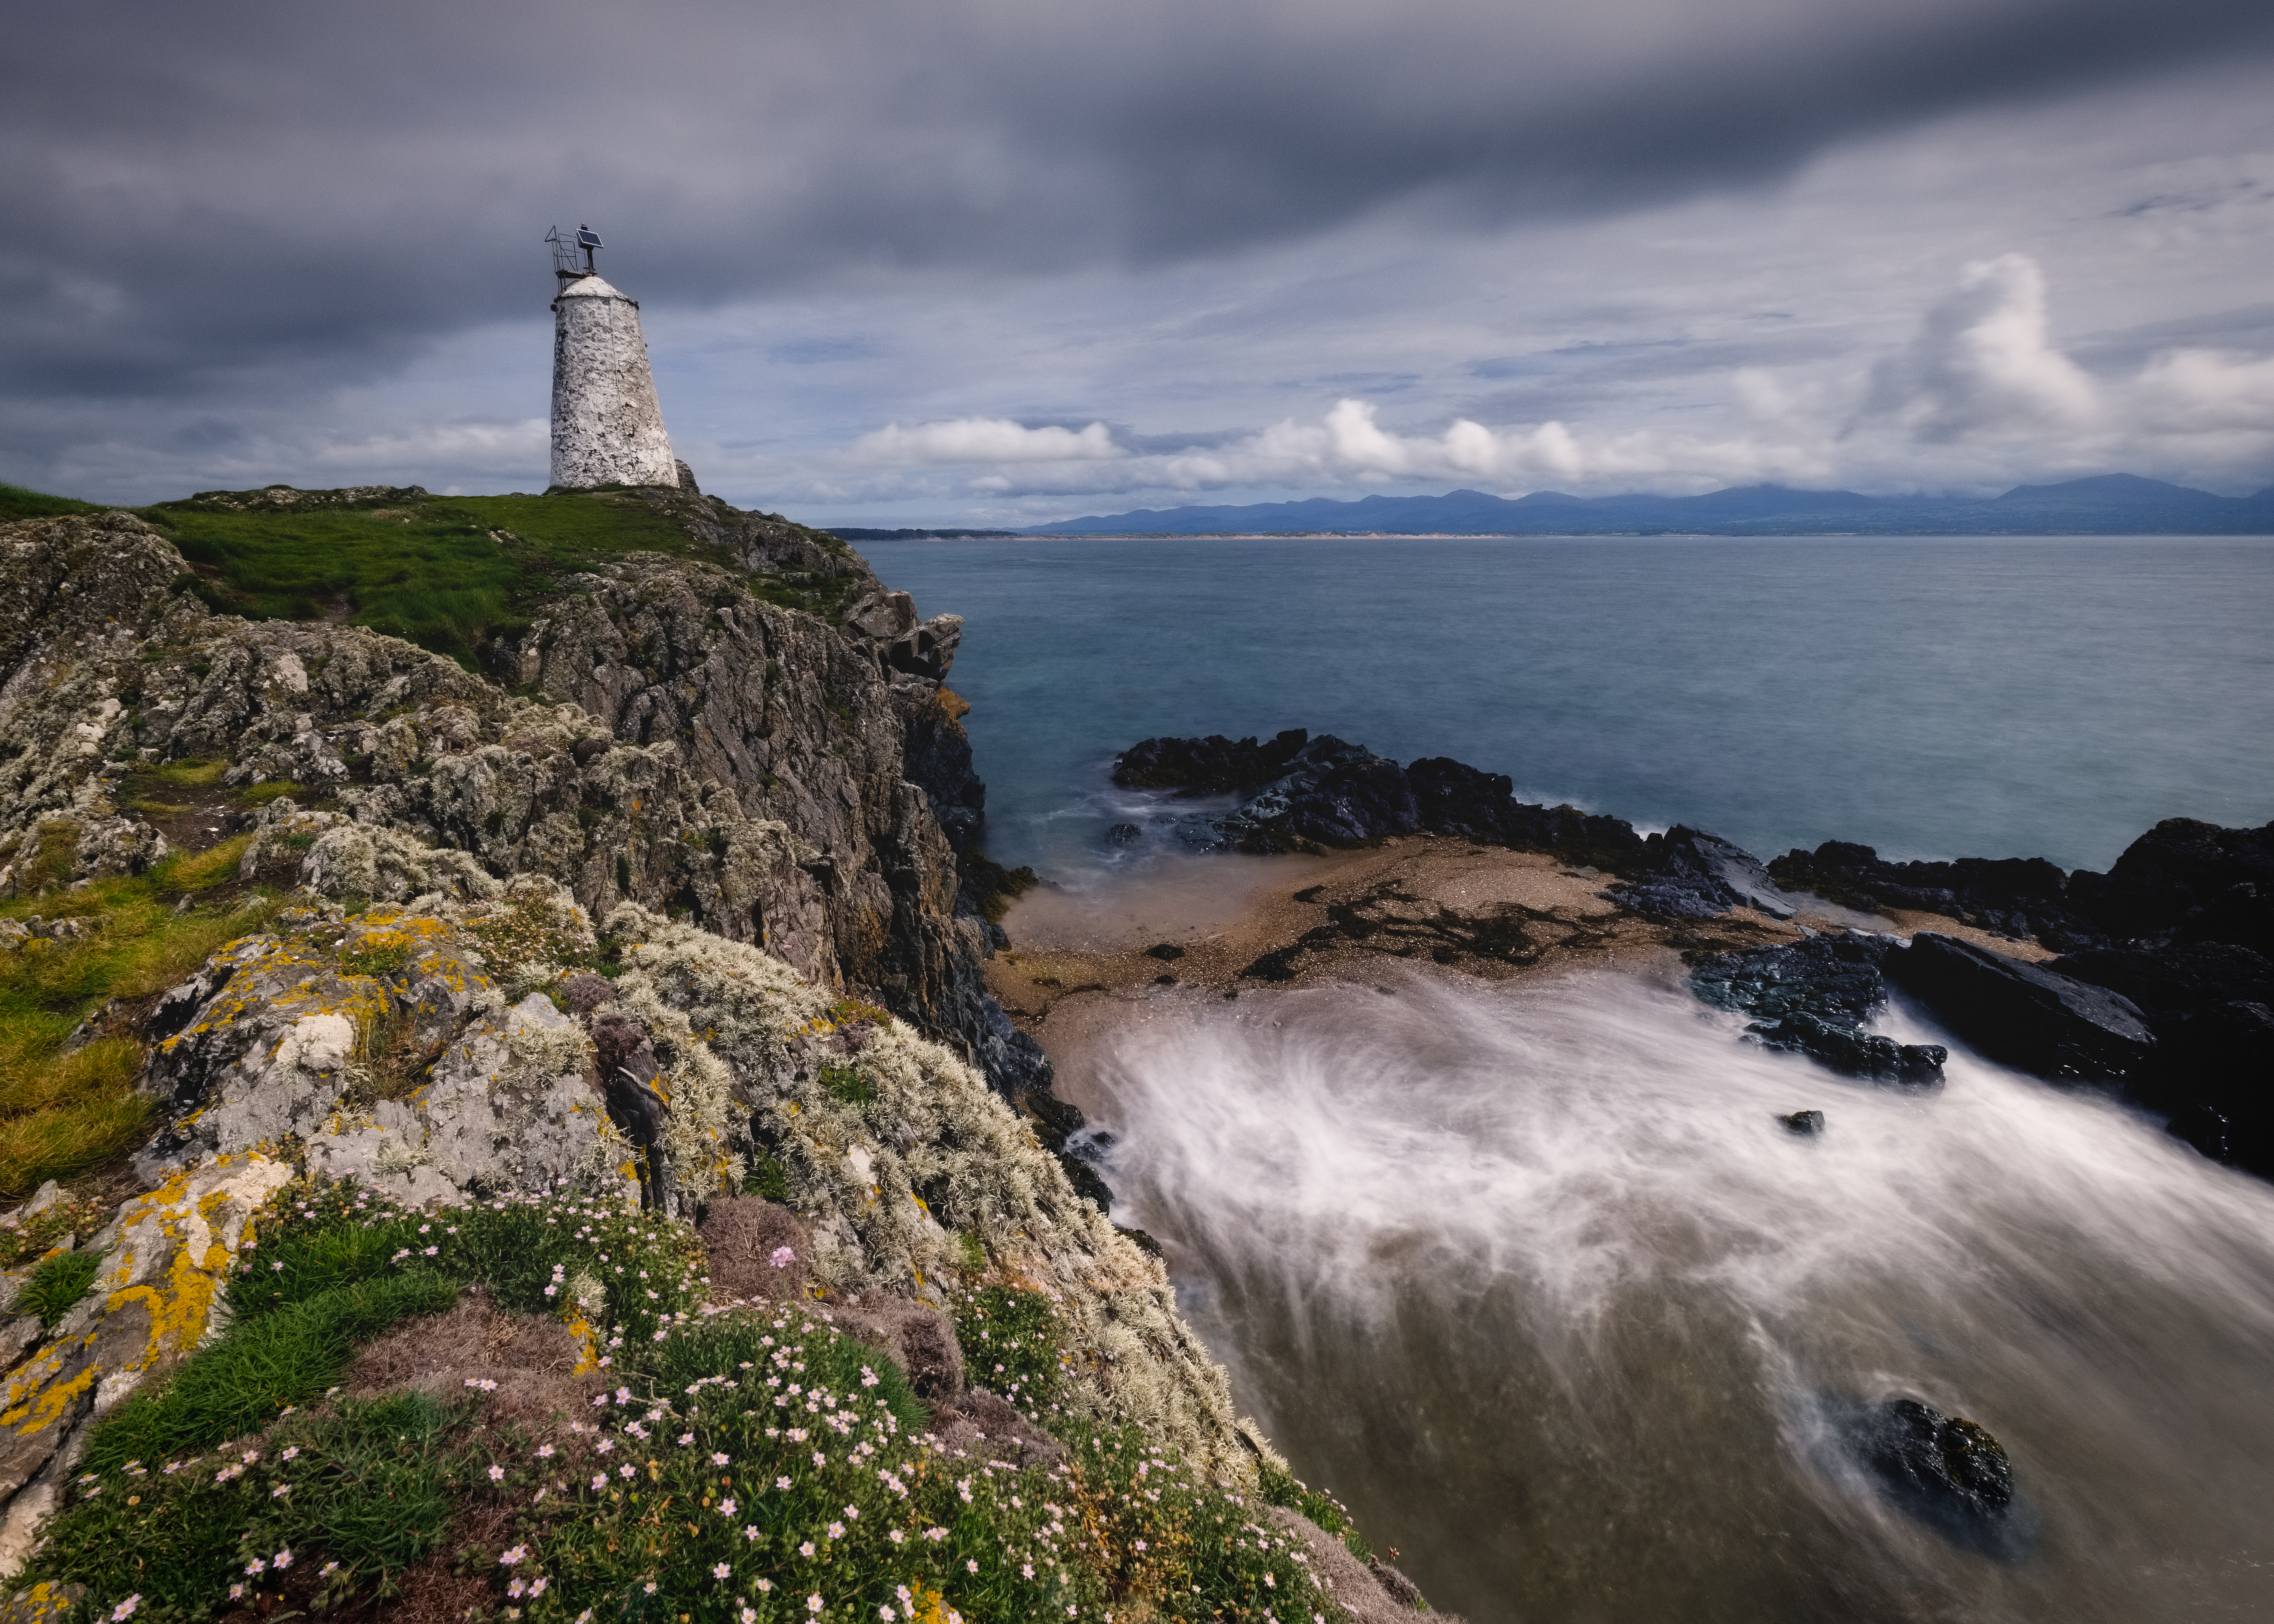 97324 download wallpaper Nature, Lighthouse, Cliff, Rock, Shore, Bank, Sea screensavers and pictures for free